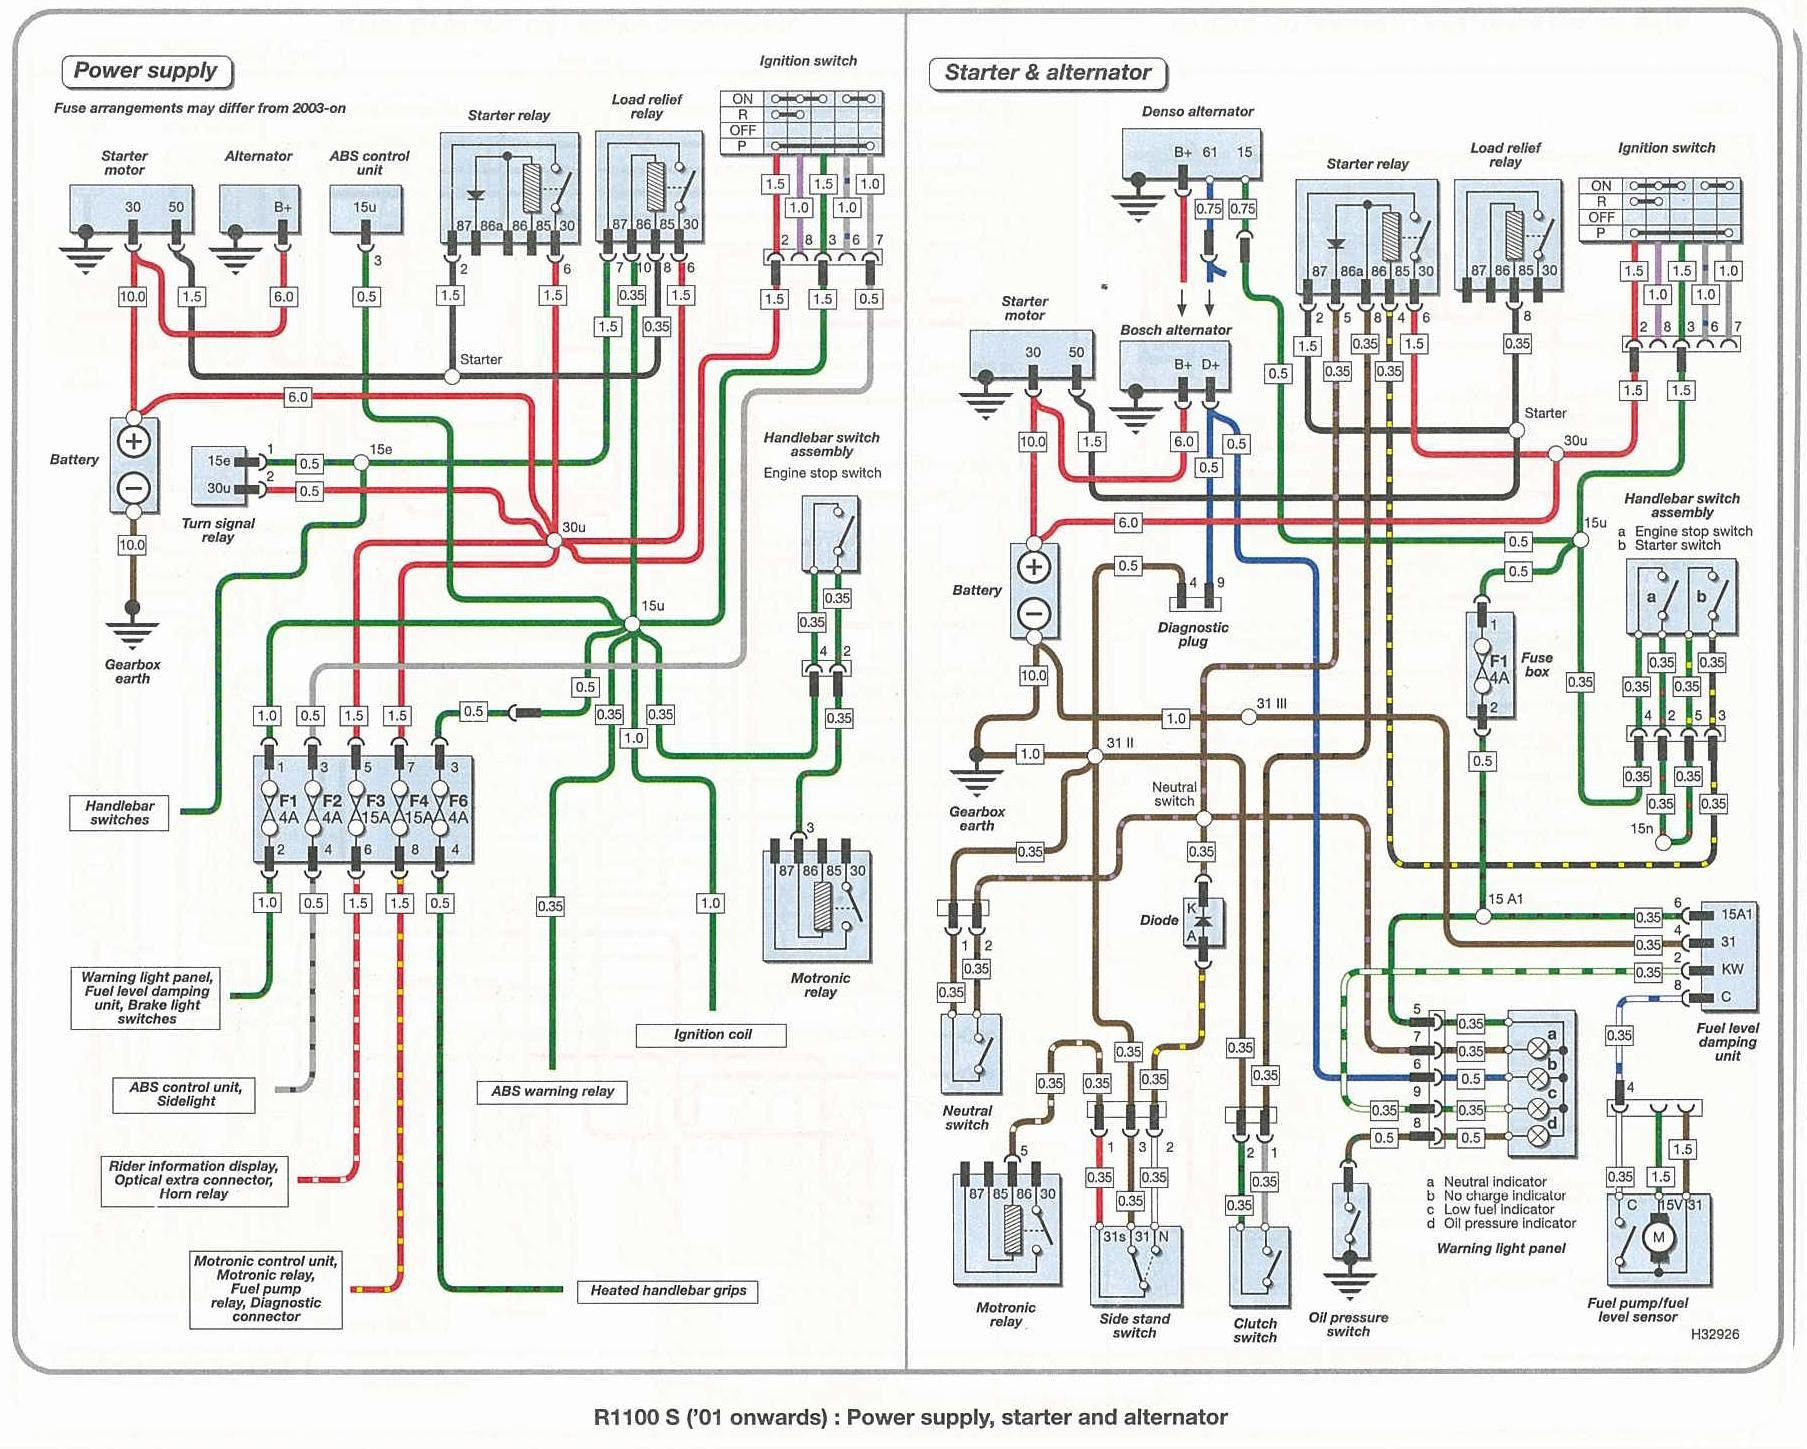 [DIAGRAM_38ZD]  Pin on f650gs | 2016 Bmw Motorcycle Wiring Diagram |  | Pinterest